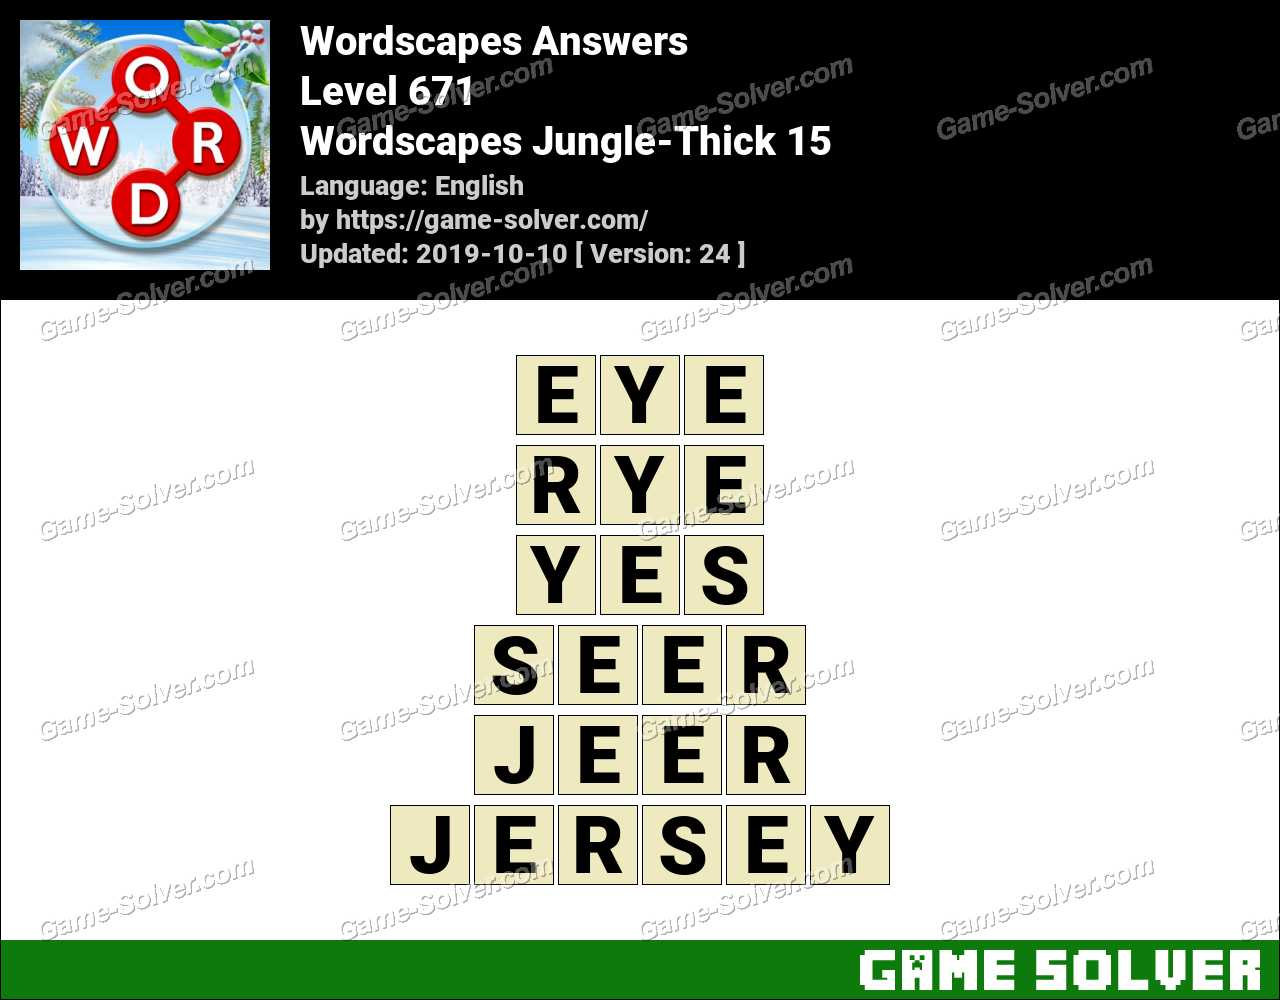 Wordscapes Jungle-Thick 15 Answers